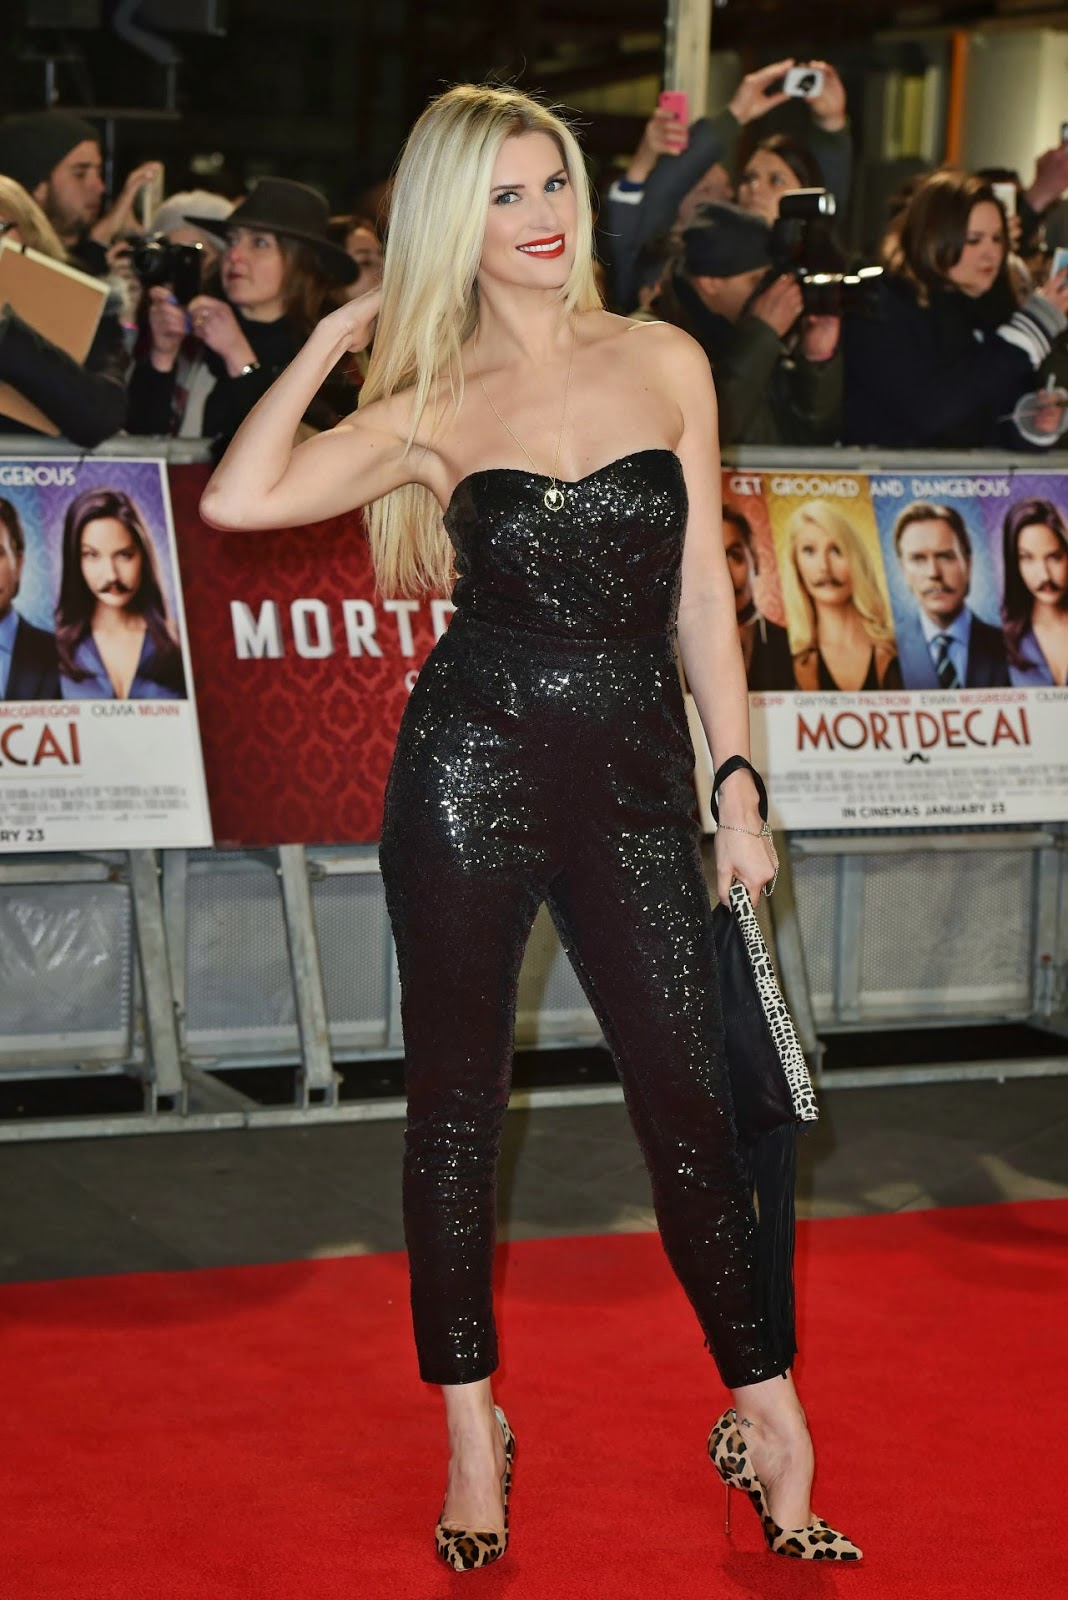 Actress,Model: Sarah Jayne Dunn - Movie Premiere 'Mortdecai' In London